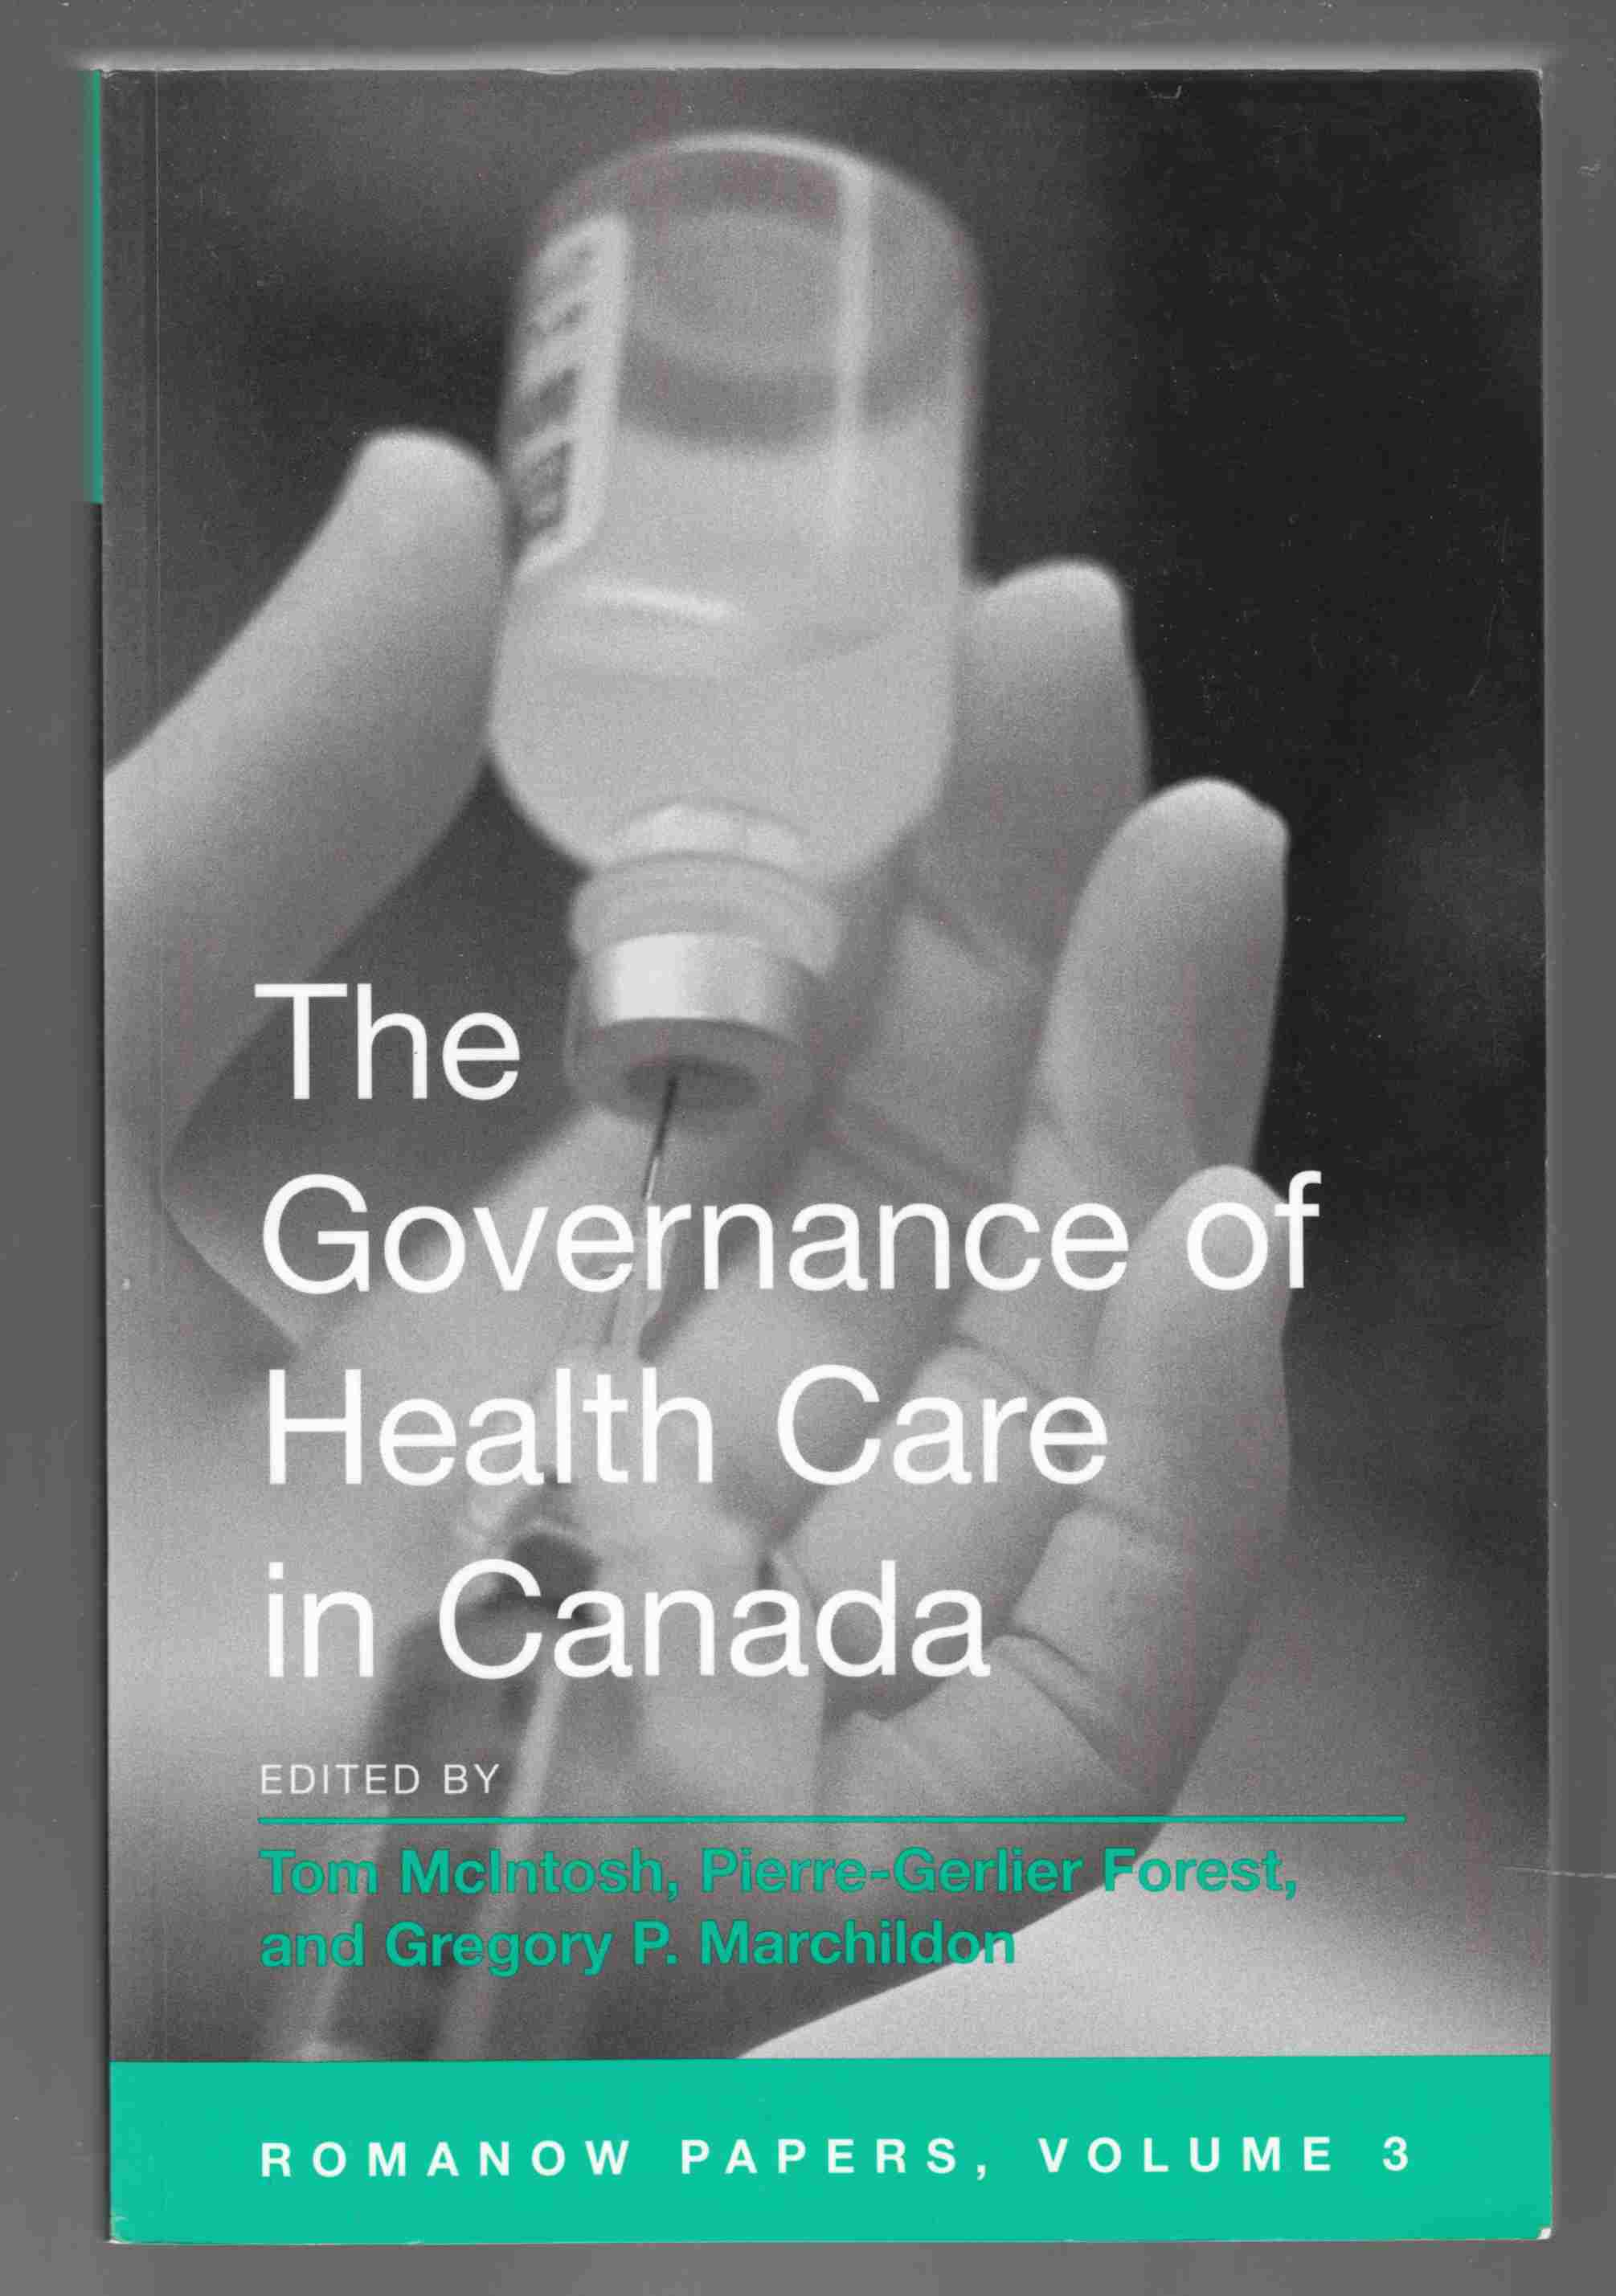 Image for The Governance of Health Care in Canada Romanow Paoers, Volume 3